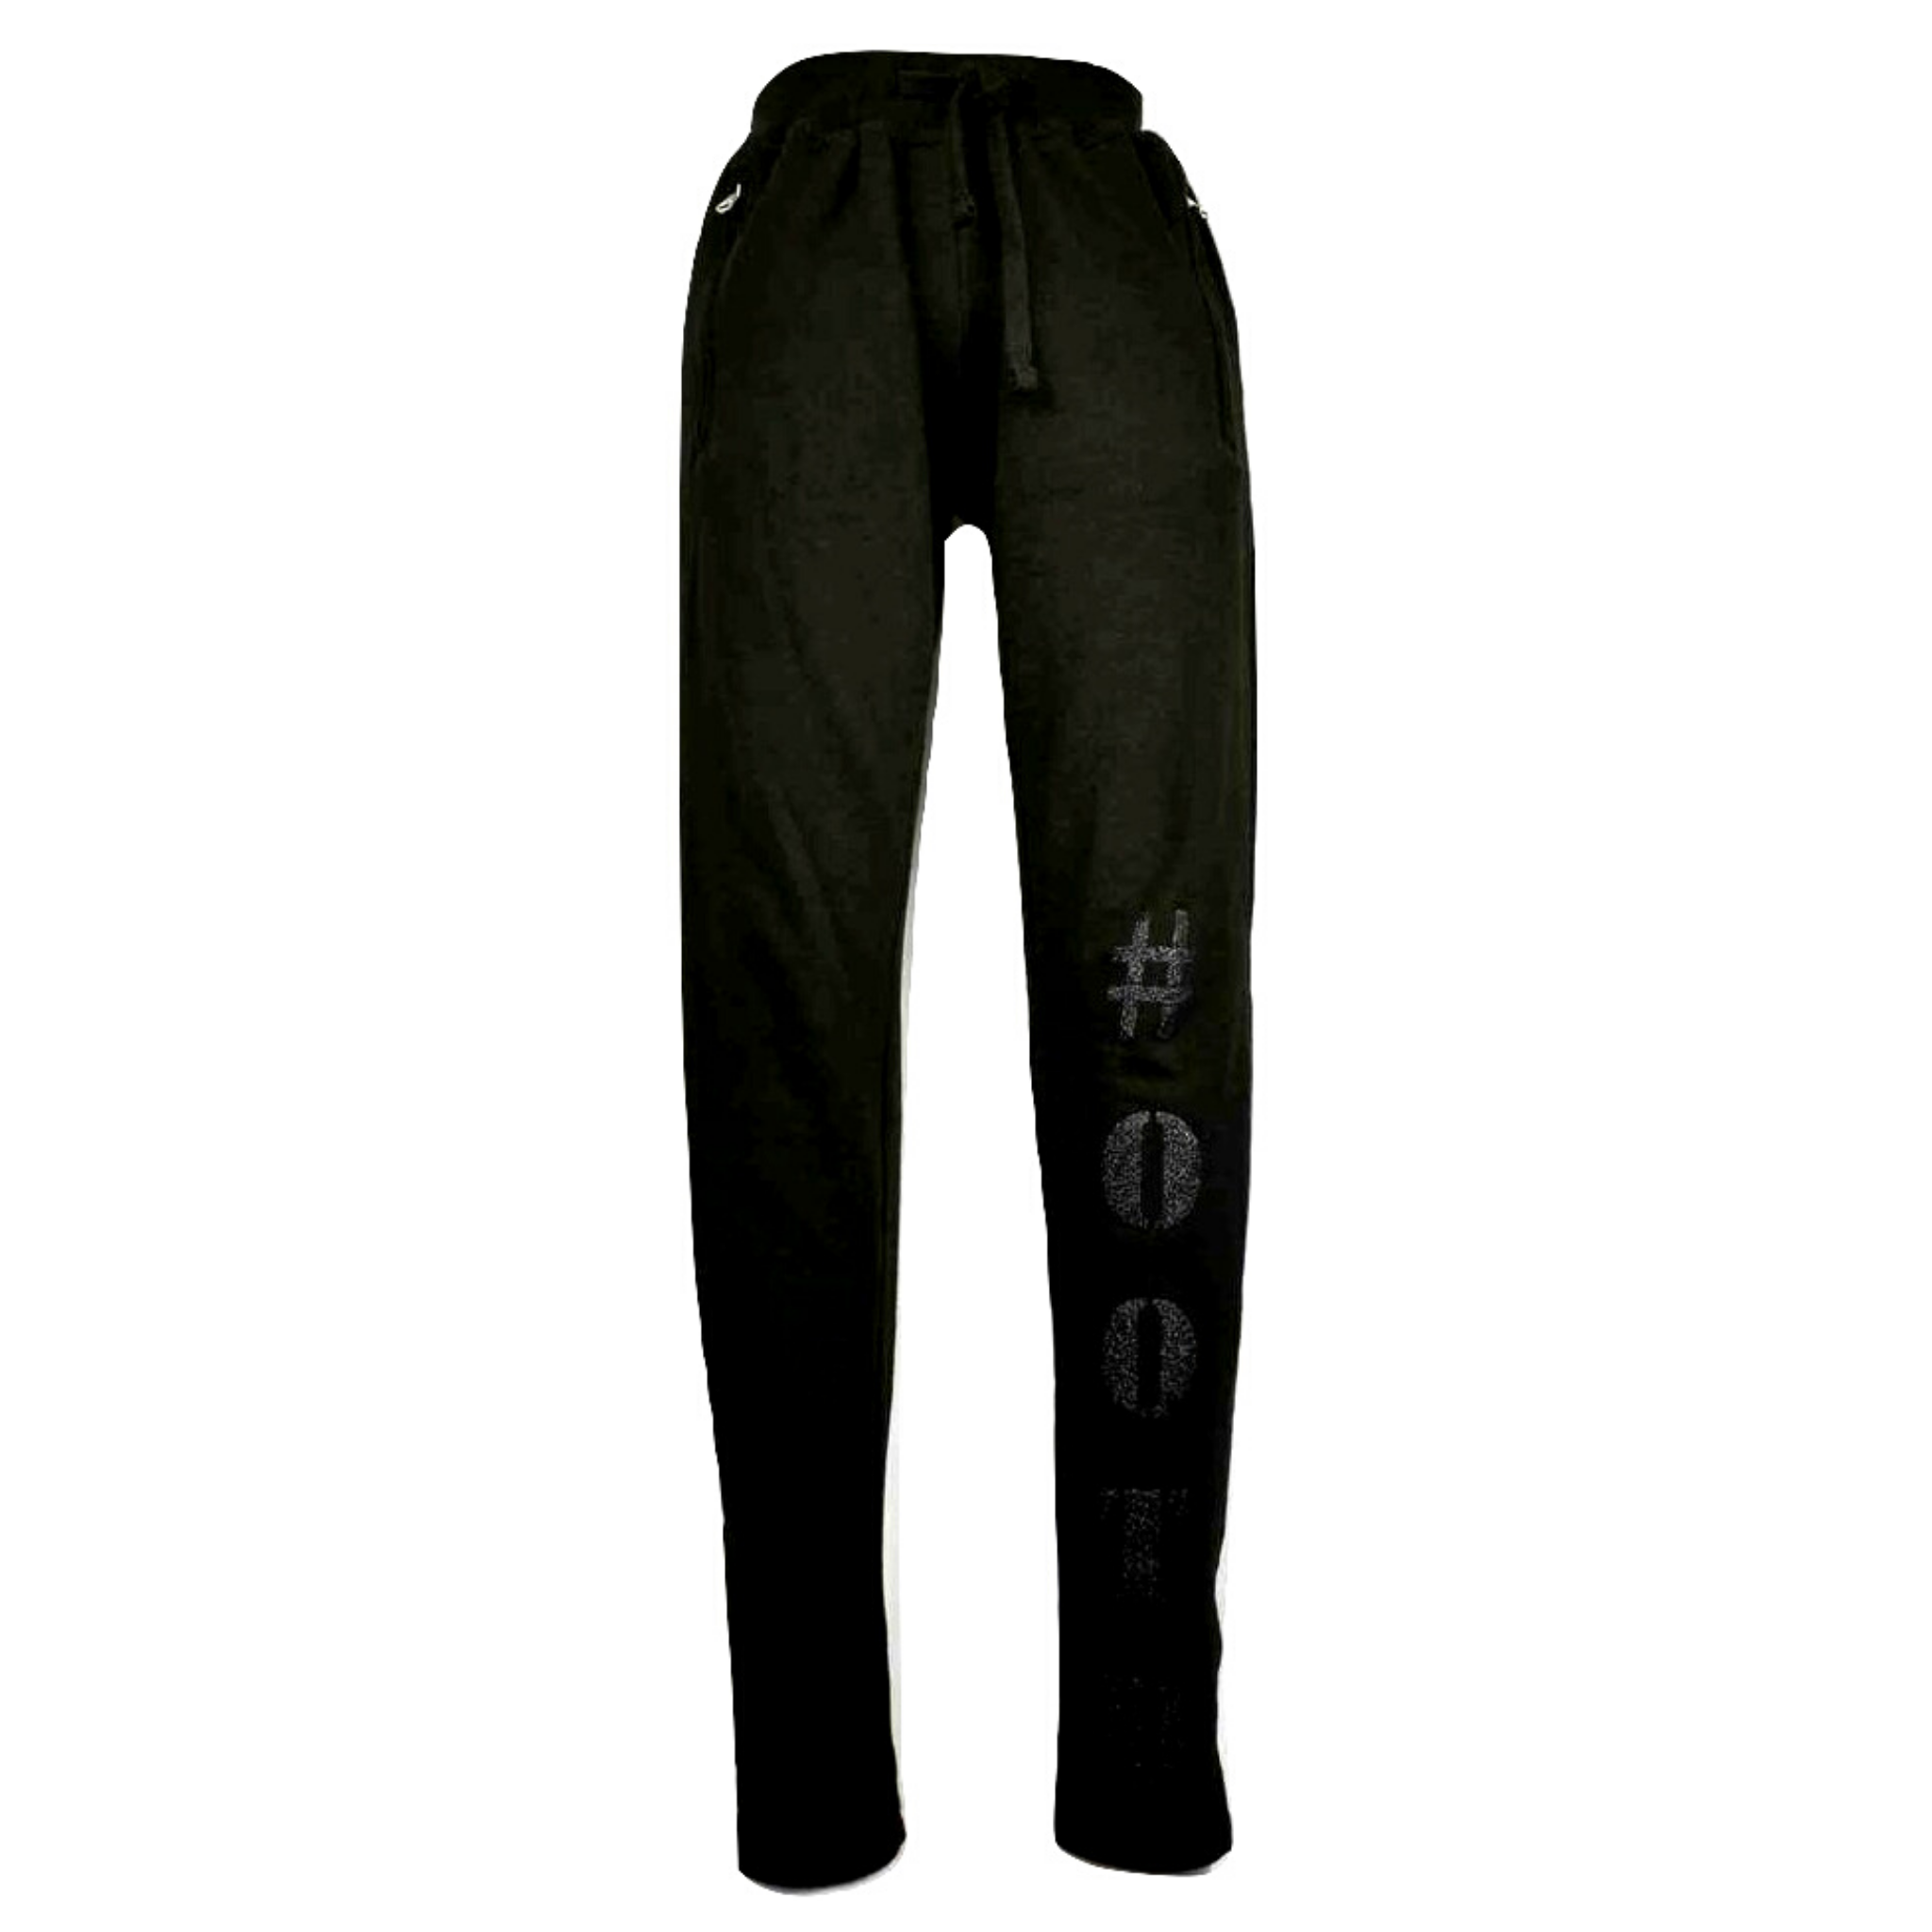 Limited Edition Black #OOTD Track Pants - DISEGNO MIO